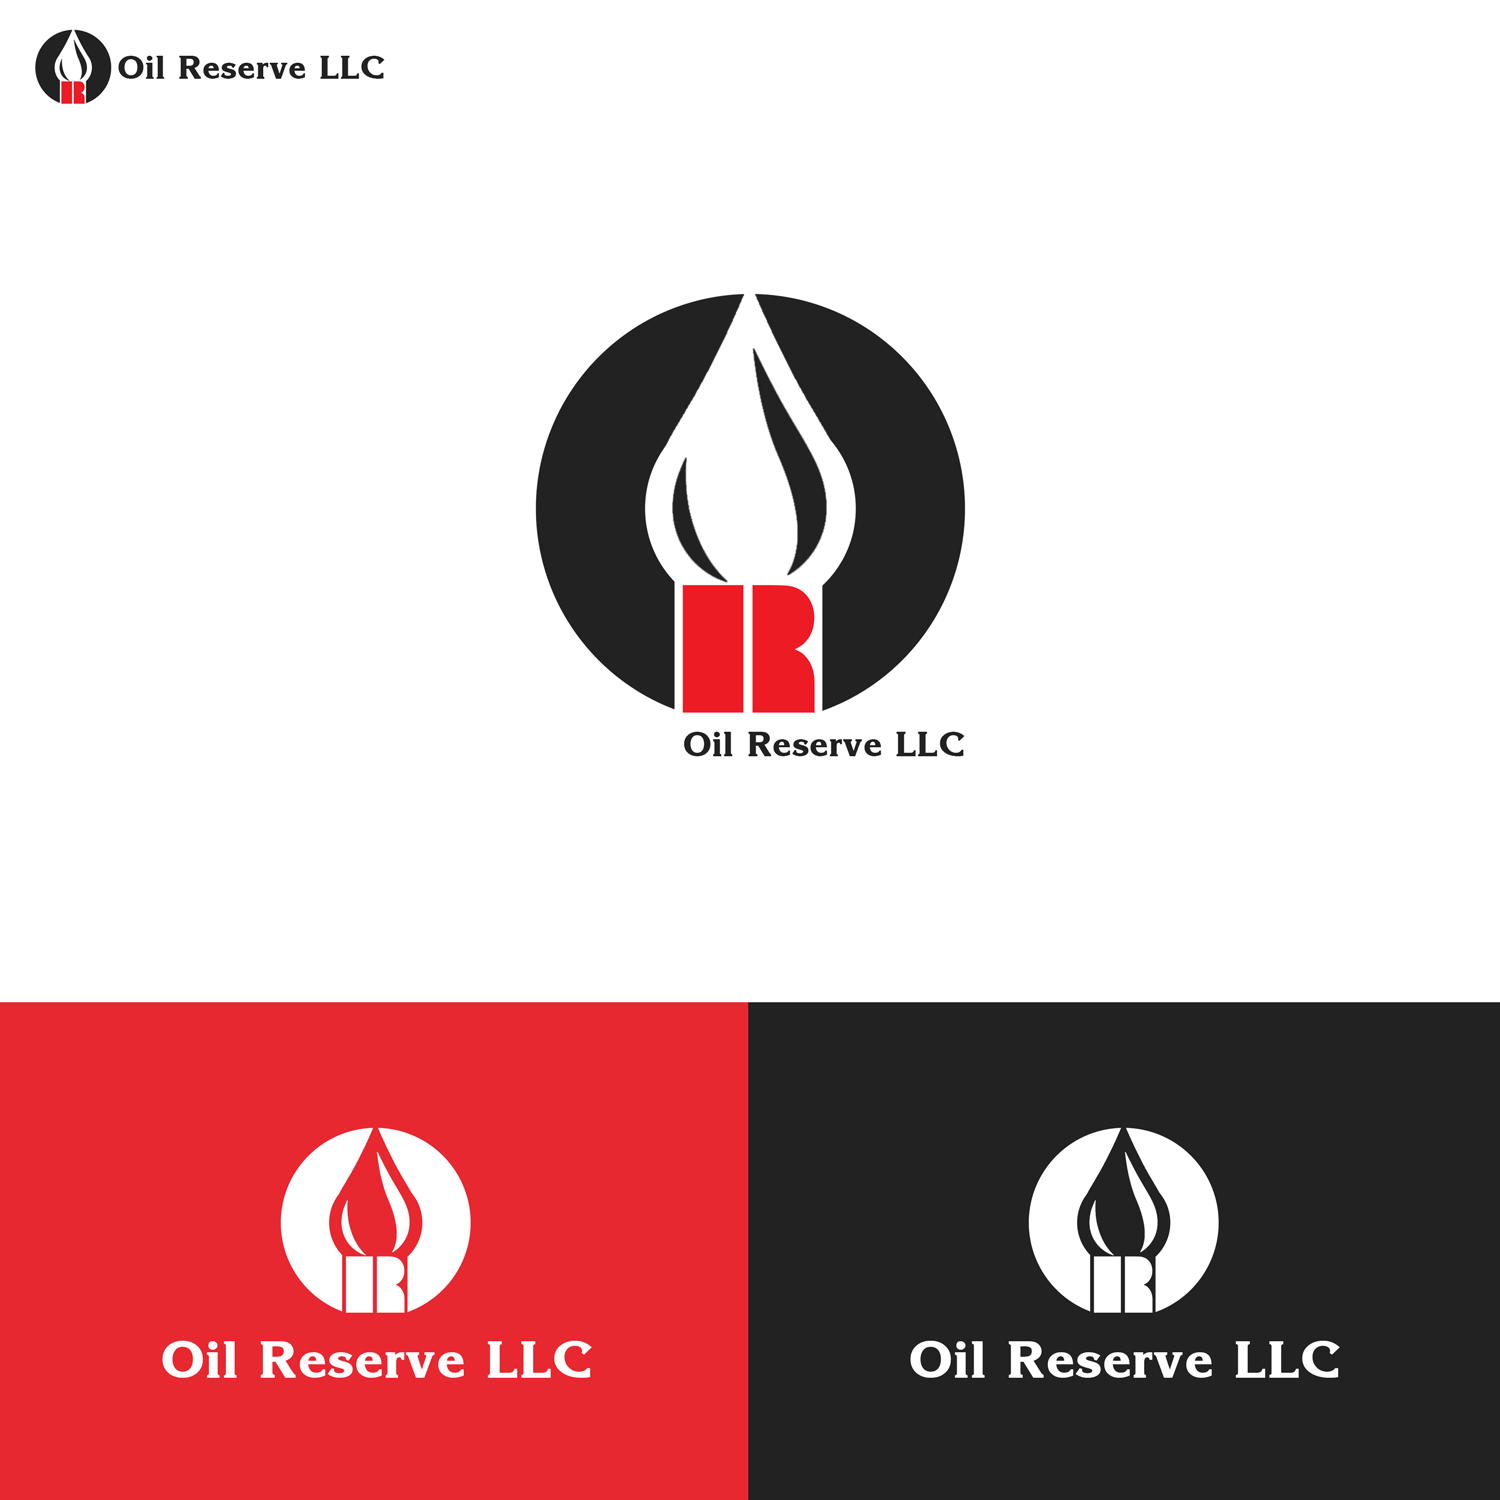 Serious Professional It Company Logo Design For Oil Reserve By